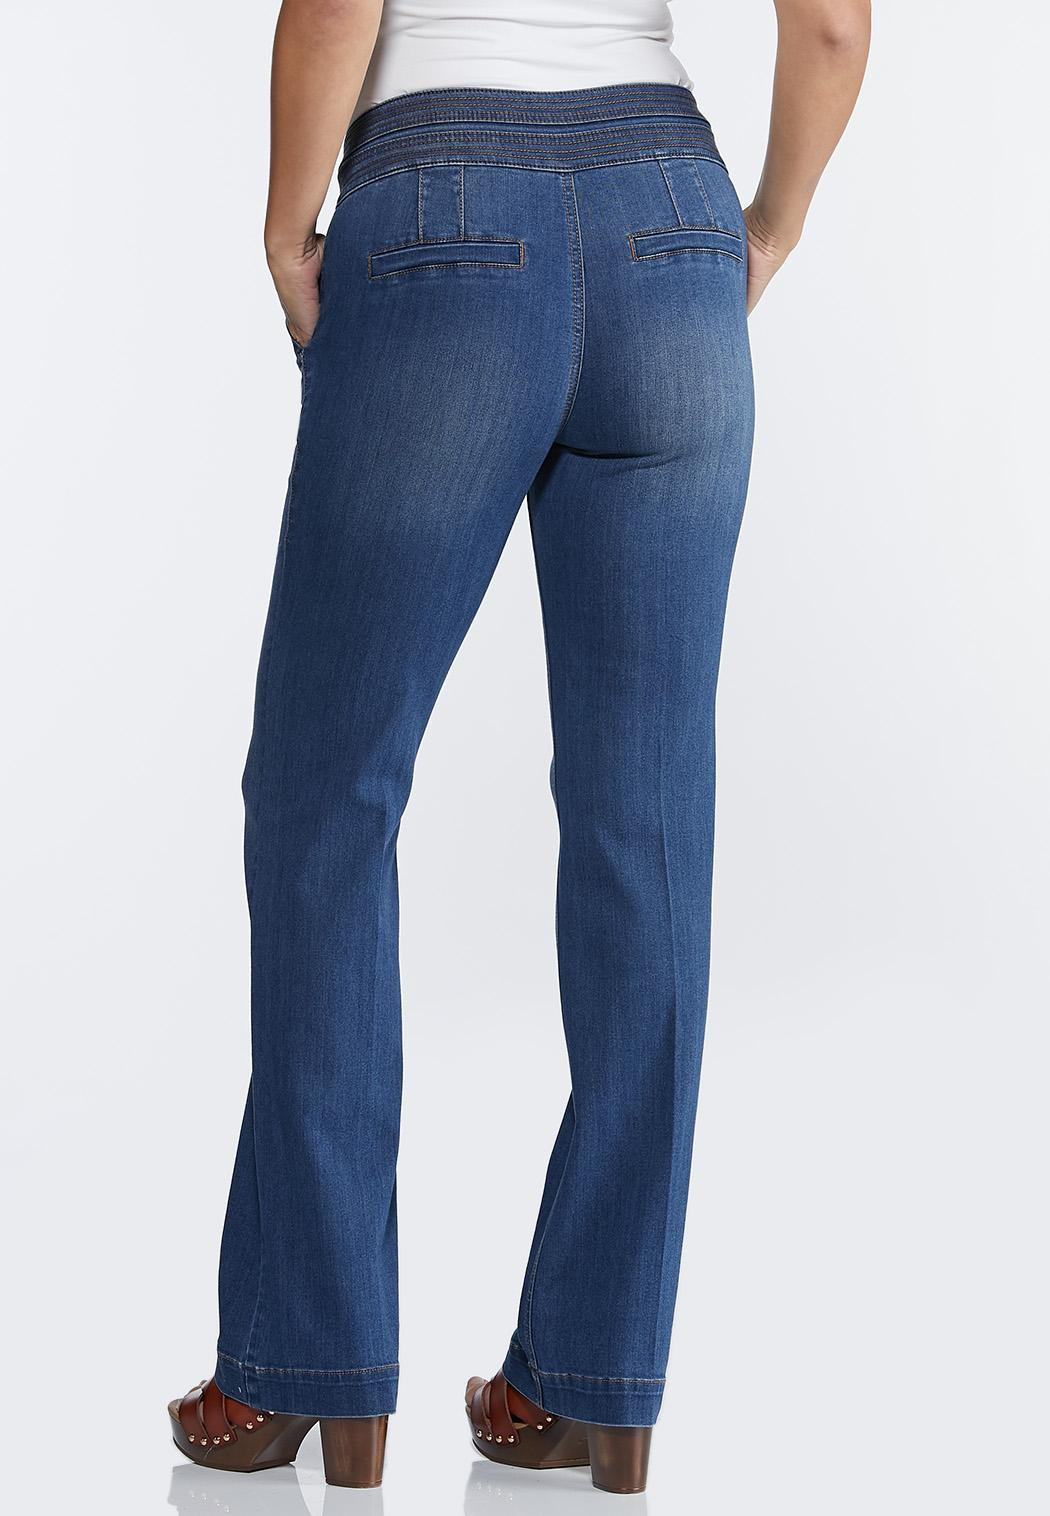 High-Rise Wide Leg Jeans (Item #44330336)